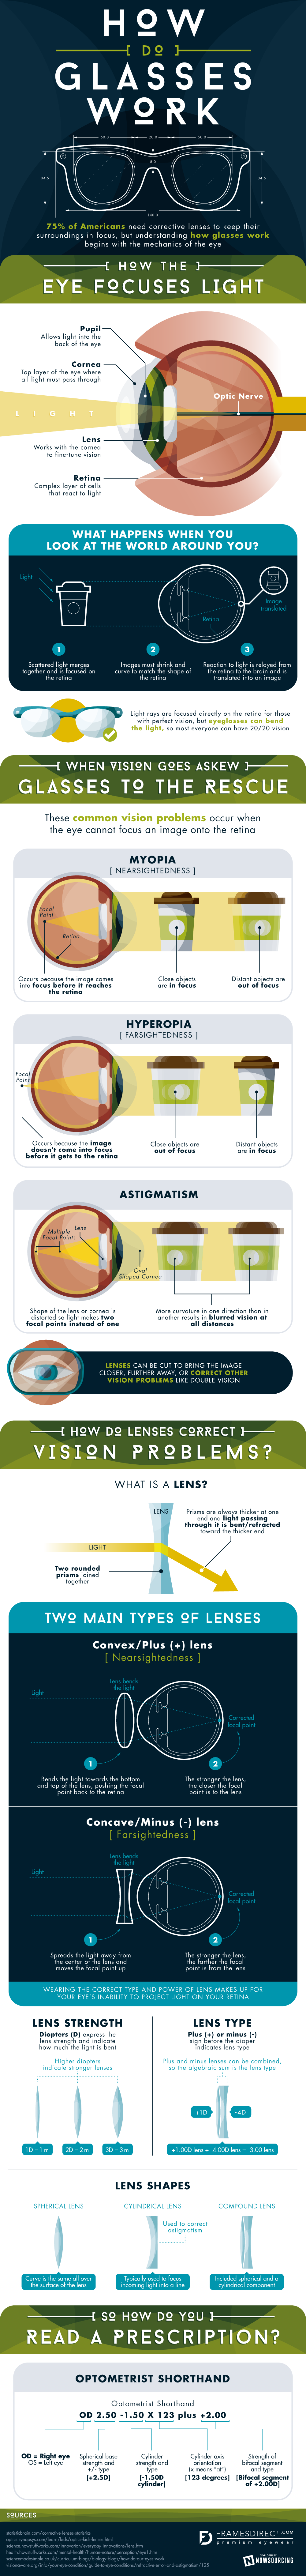 Scientific Explanation Behind The Working Of Glasses - Infographic